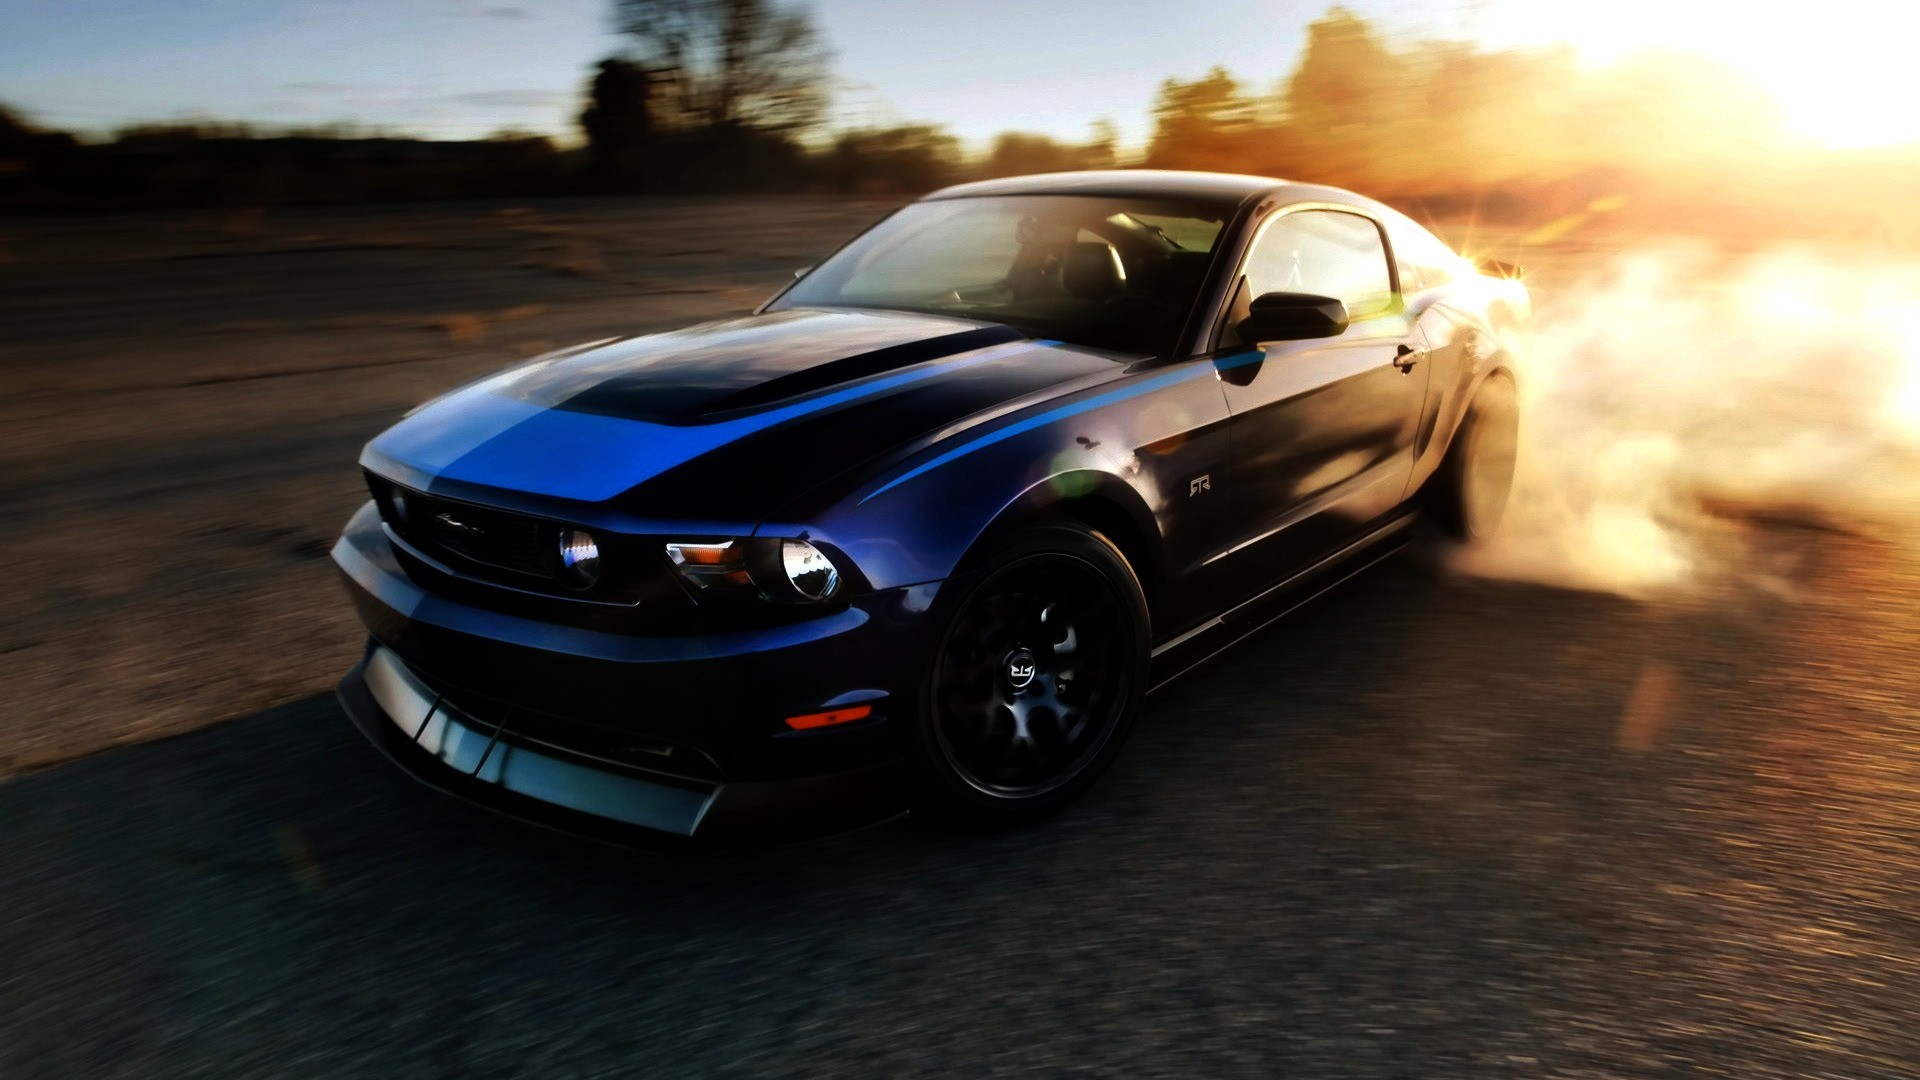 Cars Muscle Wallpaper 1920x1080 Cars Muscle Cars Dust Ford 1920x1080